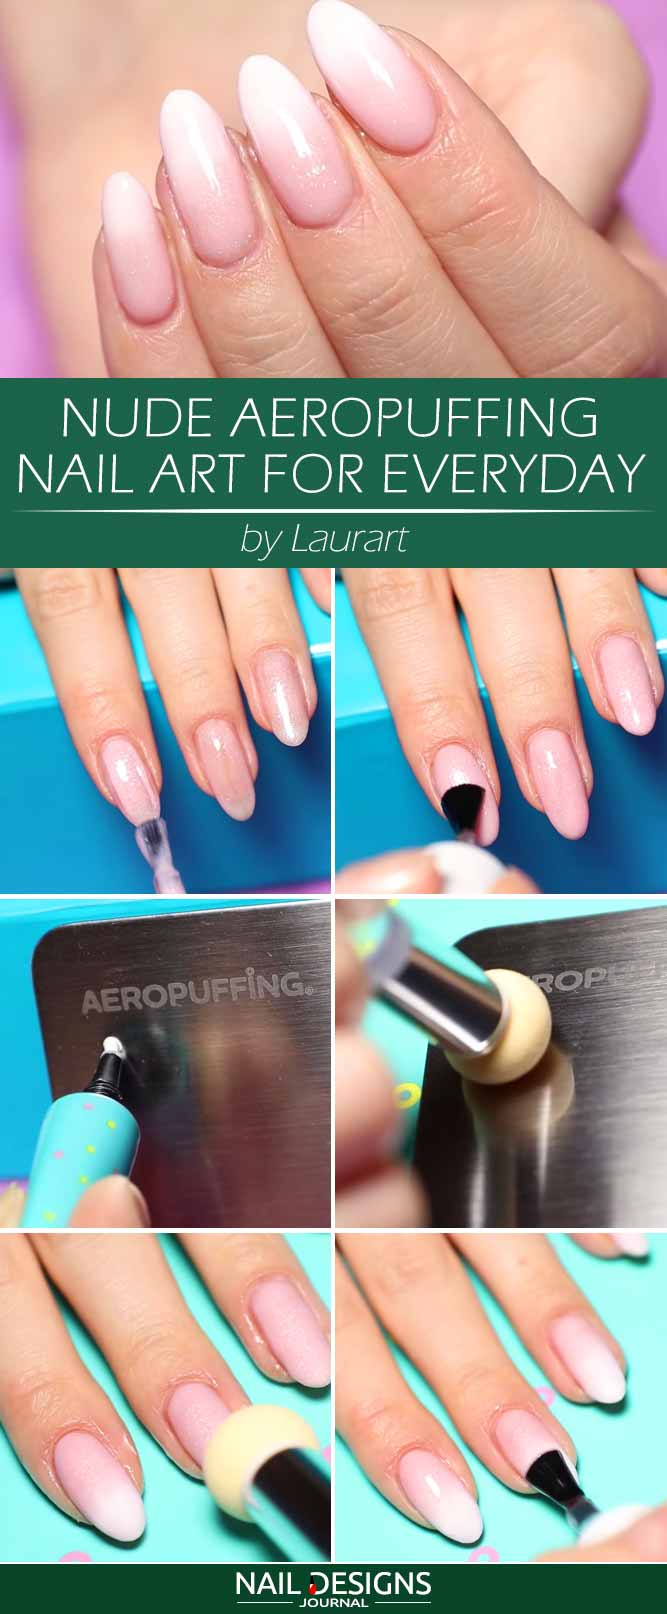 Nude Aeropuffing Nail Art For Everyday